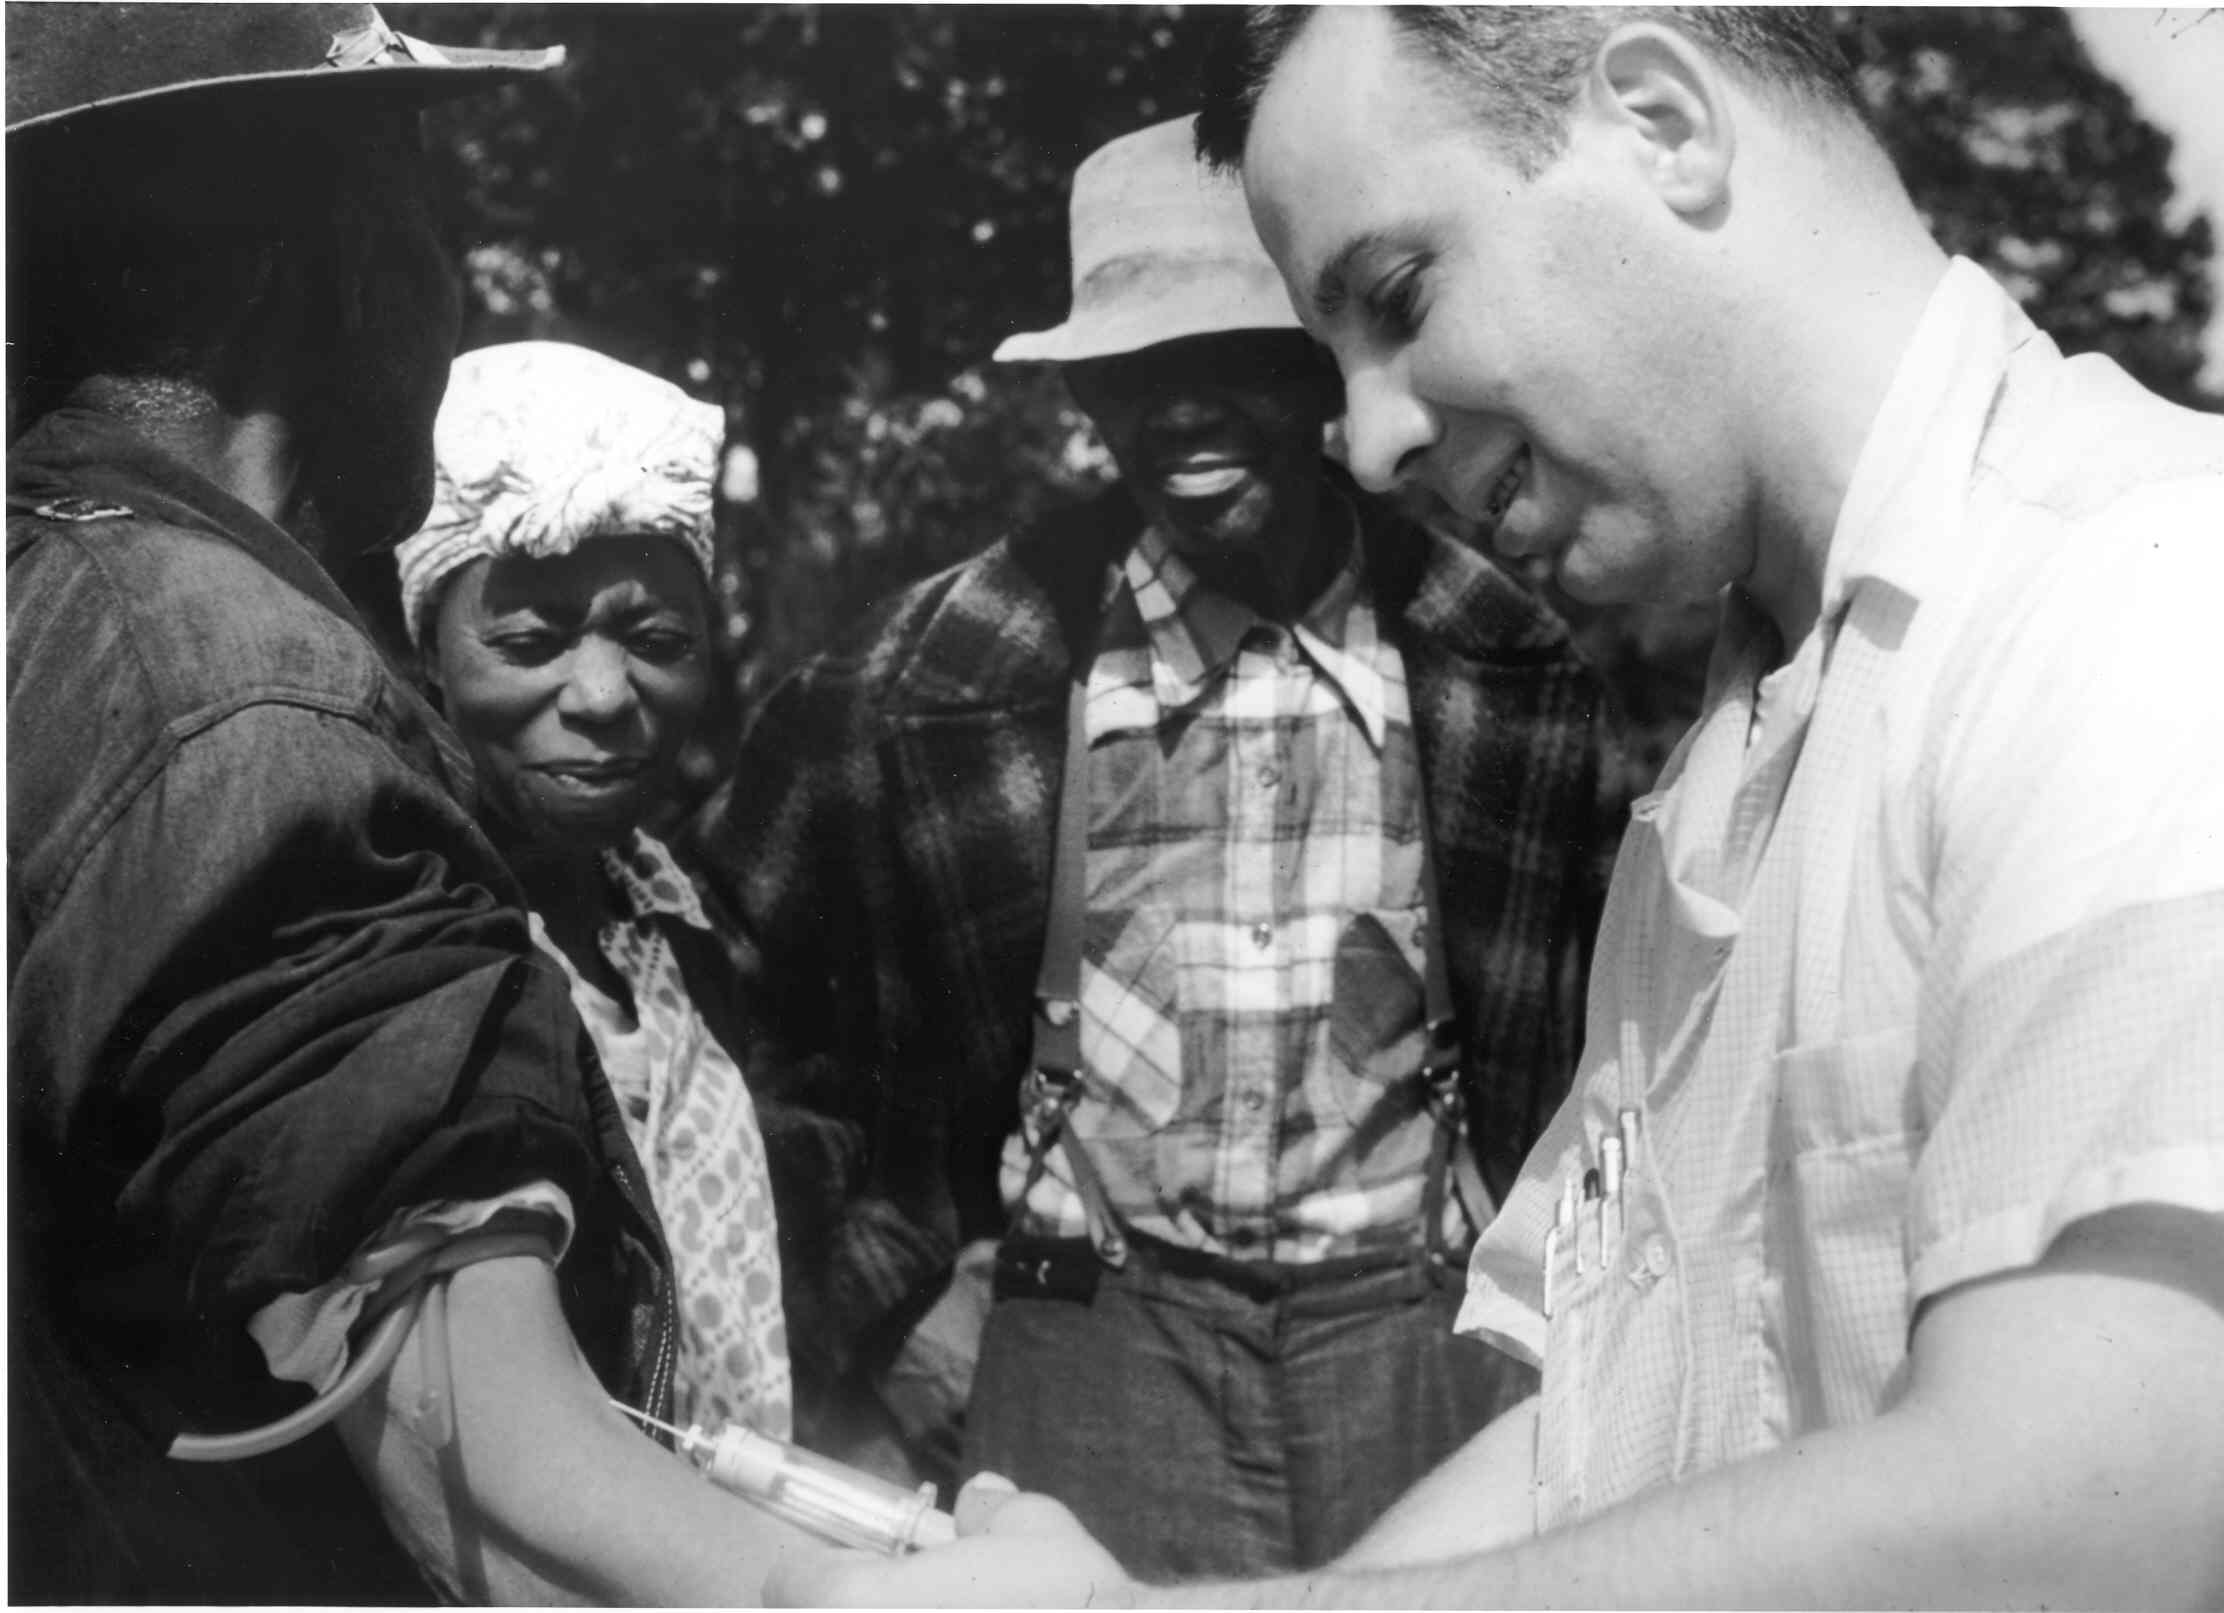 Archived black and white photo from the Tuskegee study. A white doctor draws blood from a black study participant with two others observing.